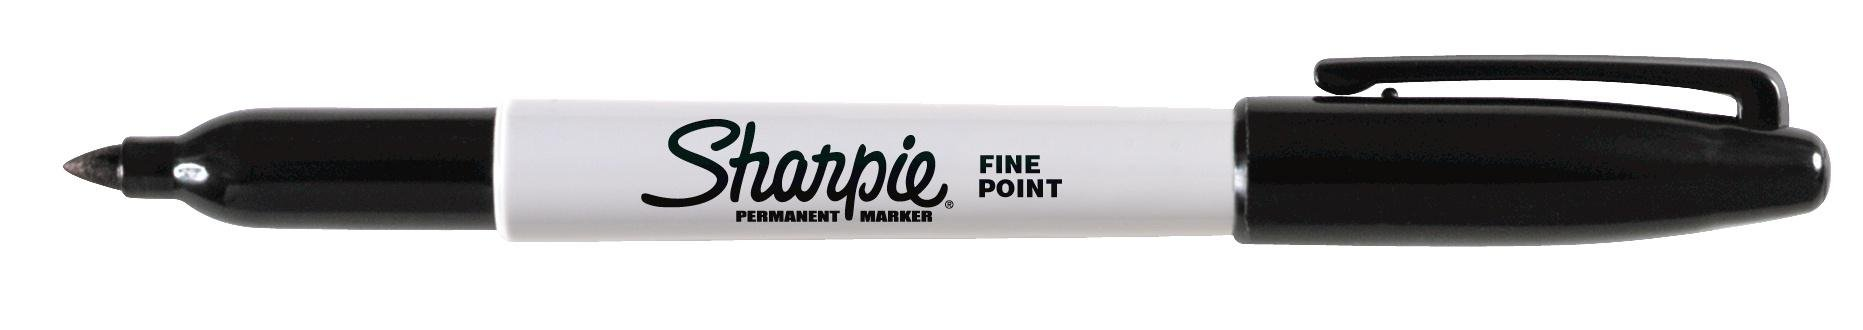 Sharpie Fine Point Permanent Marker, Black (Canister with 36 Pens) by Sharpie (Image #2)